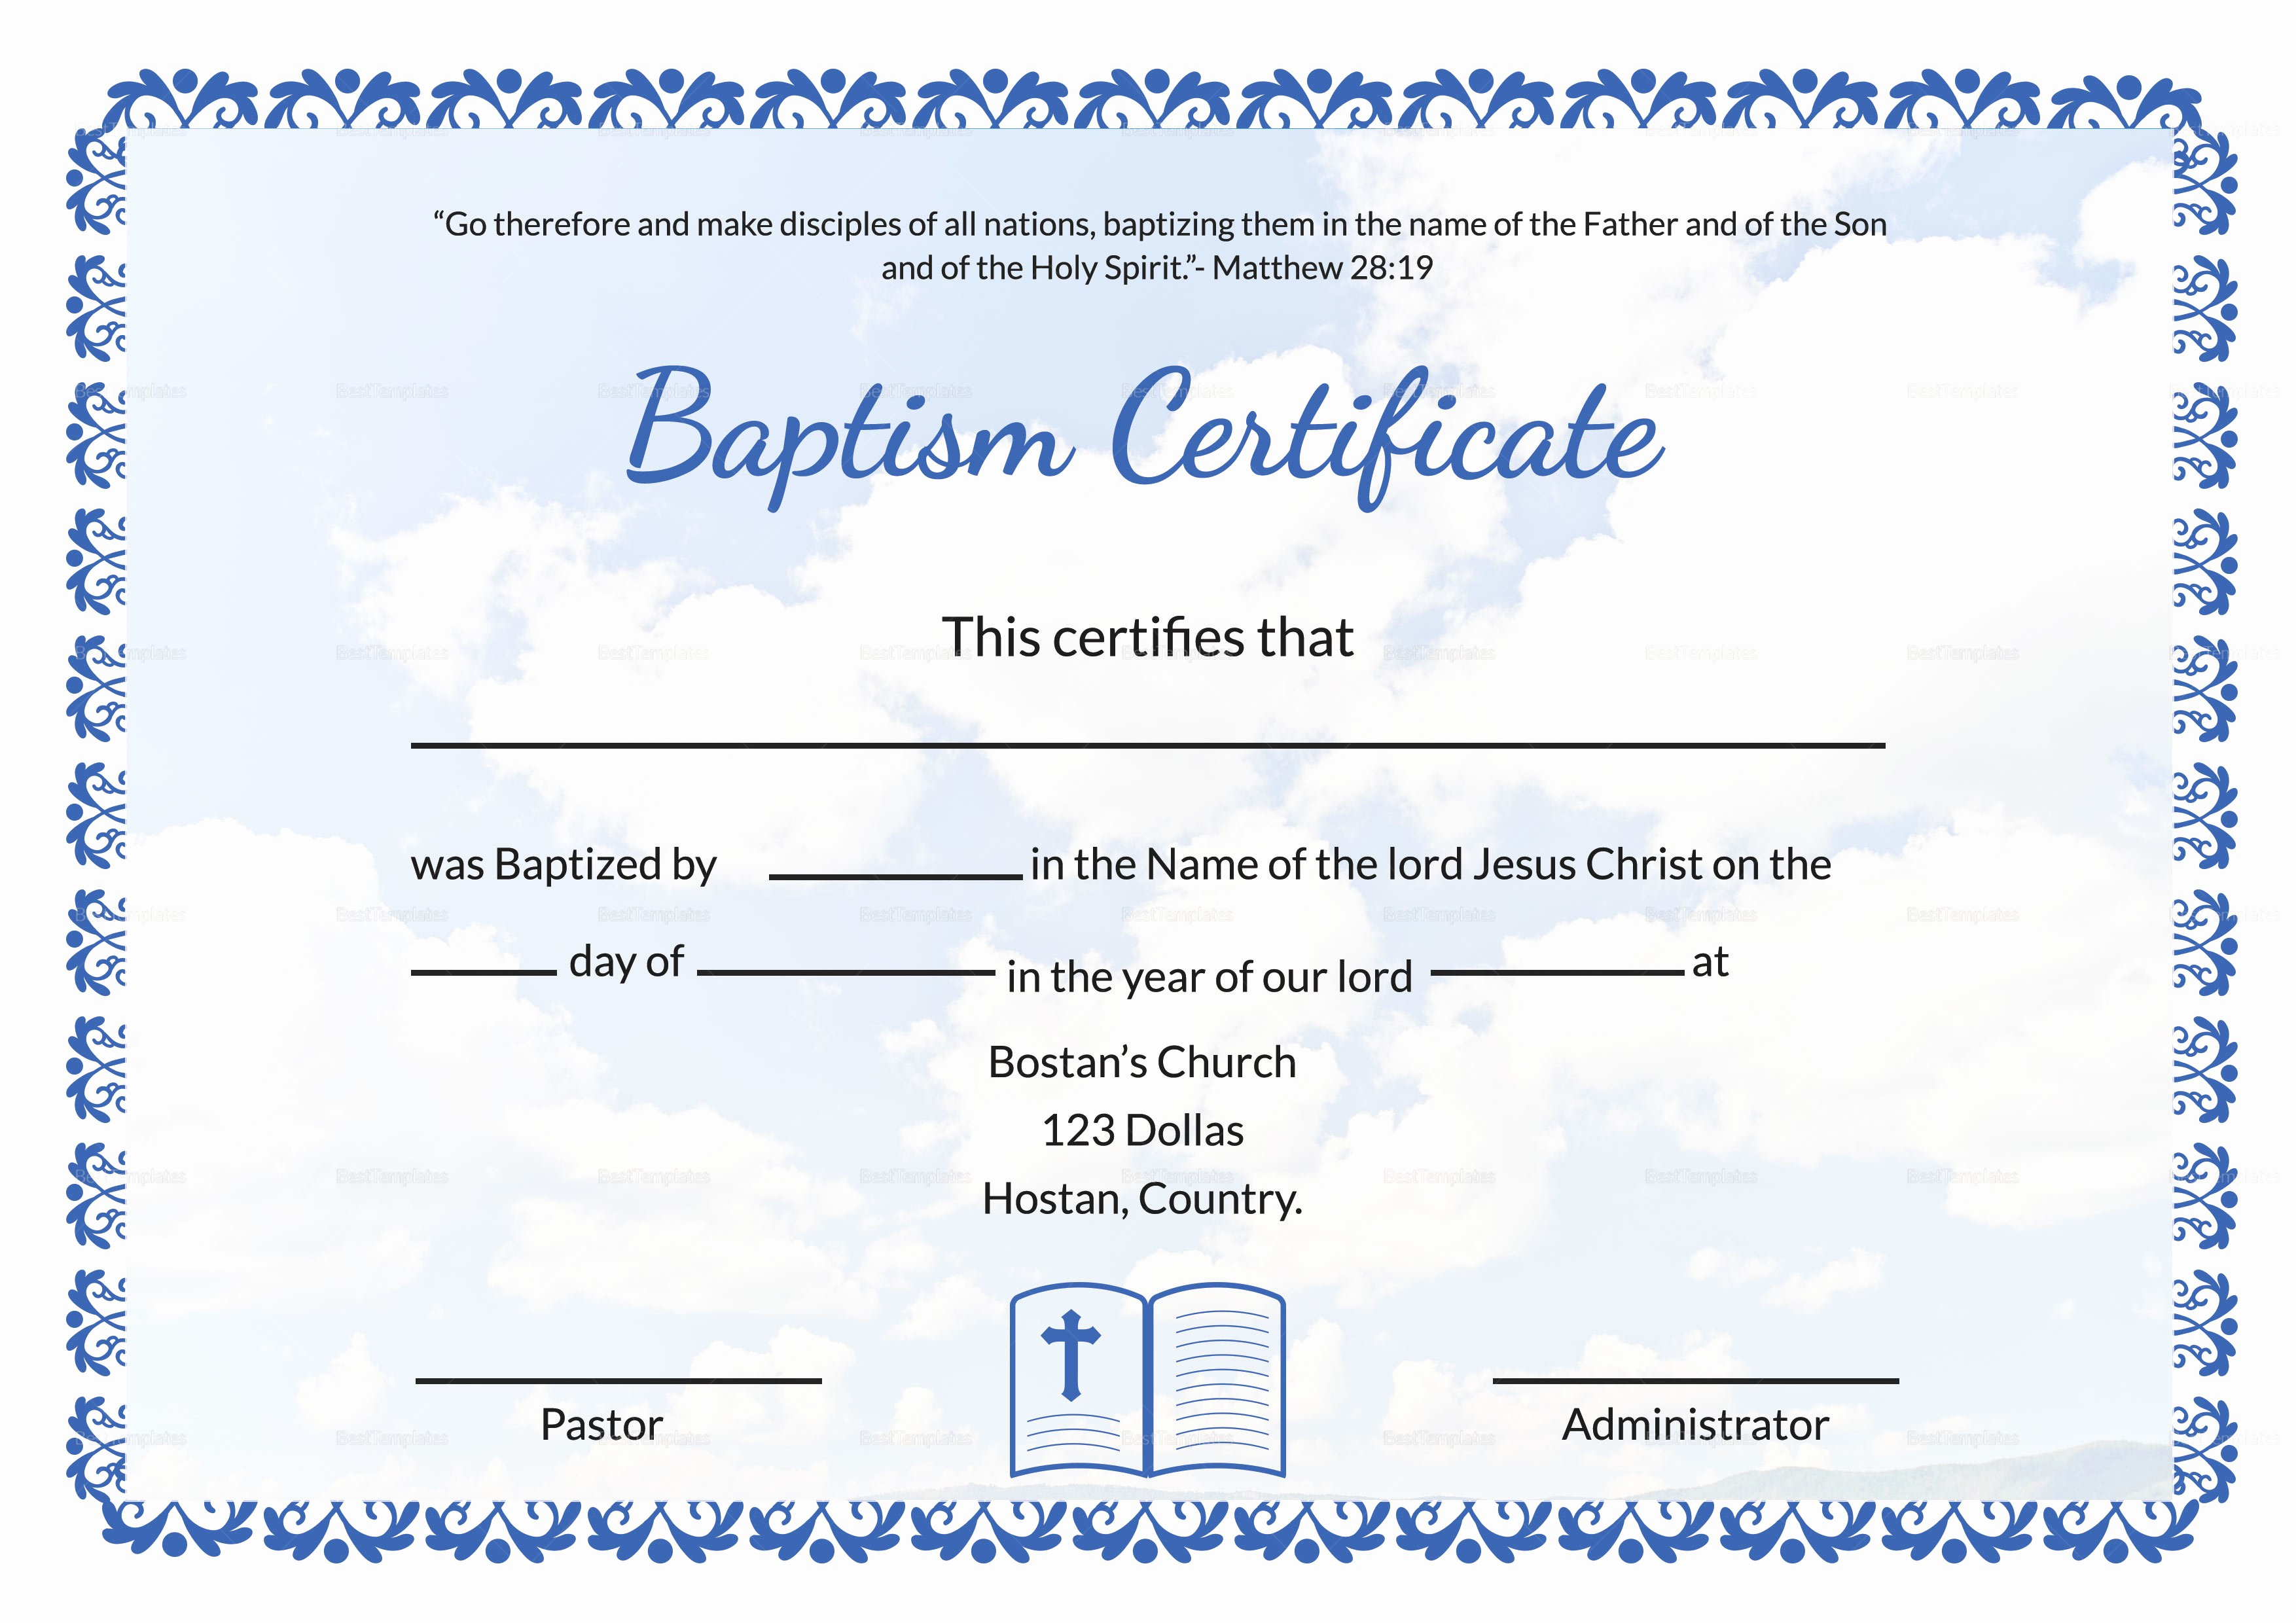 Certificate Of Baptism Word Template Beautiful Editable Baptism Certificate Template In Adobe Shop